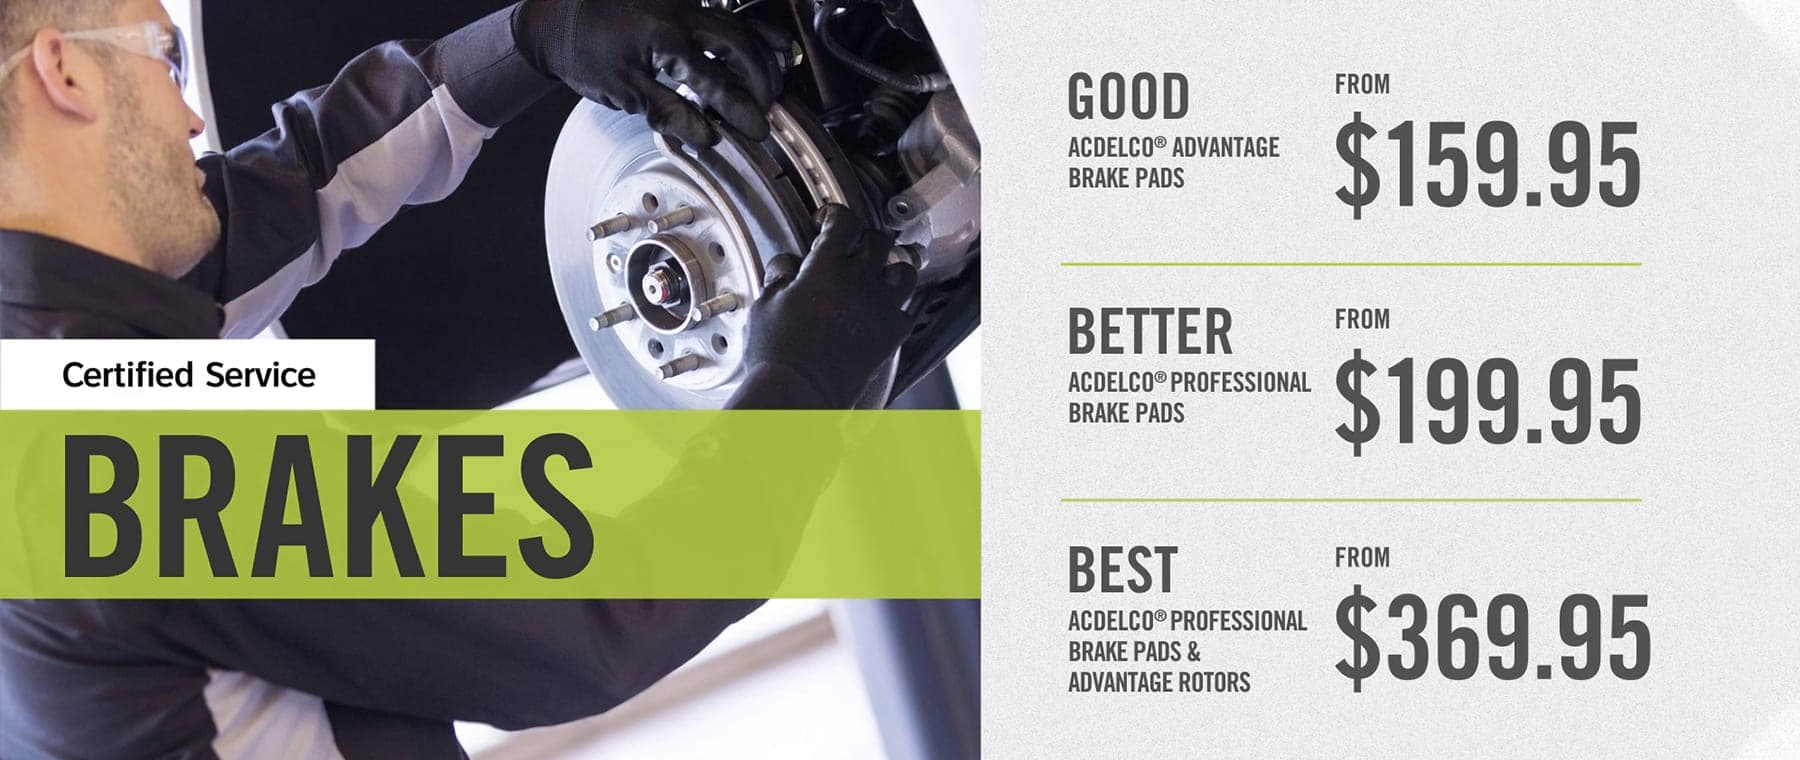 Certified Service Brakes 2020